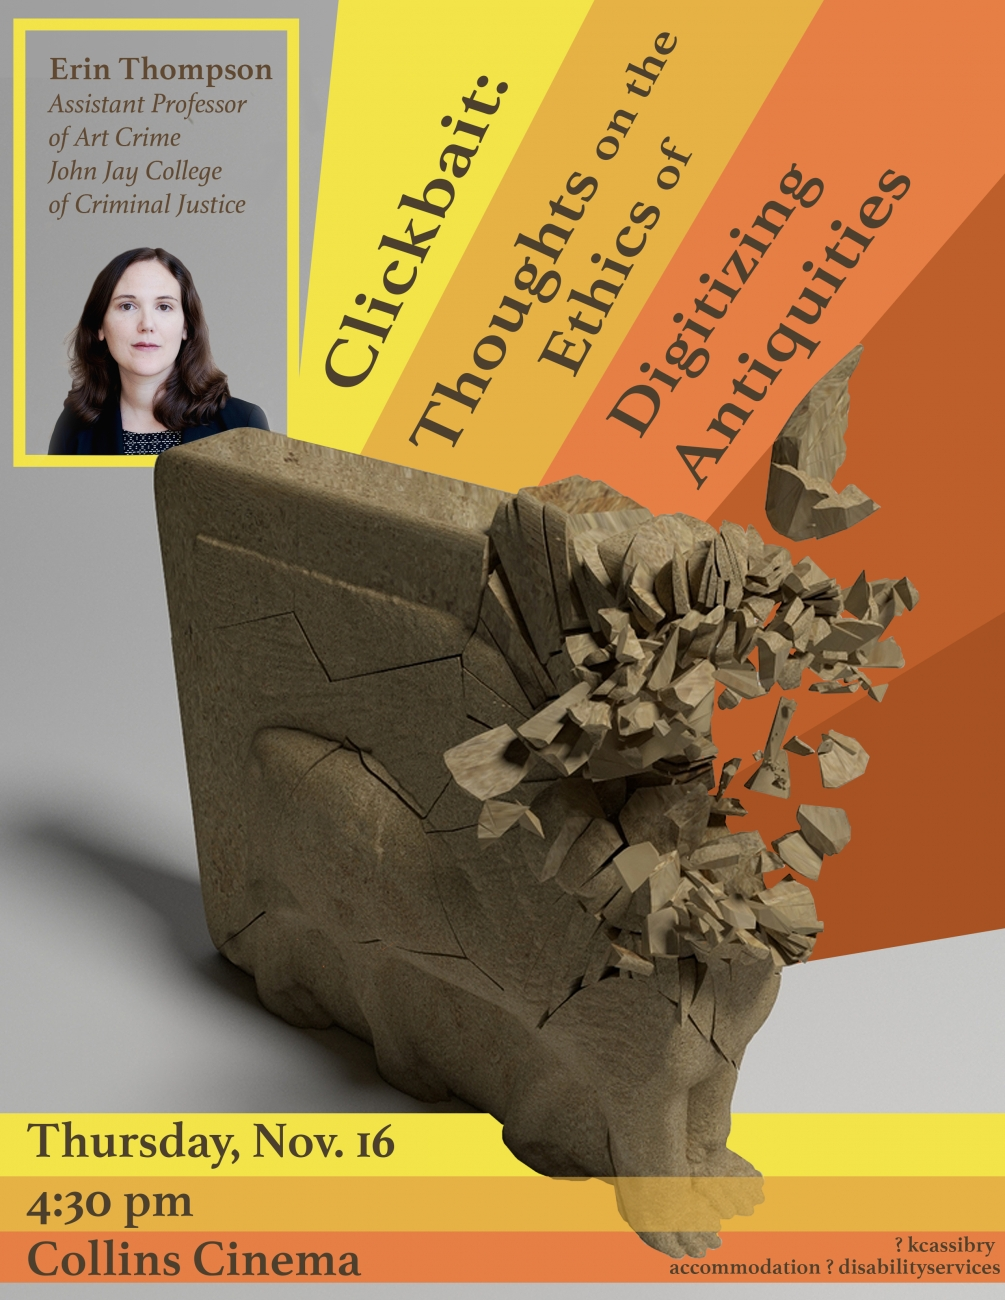 poster for lecture about digitizing antiquities, photo of visiting scholar Erin Thompson in top left, exploding digital model of ancient sculpture below